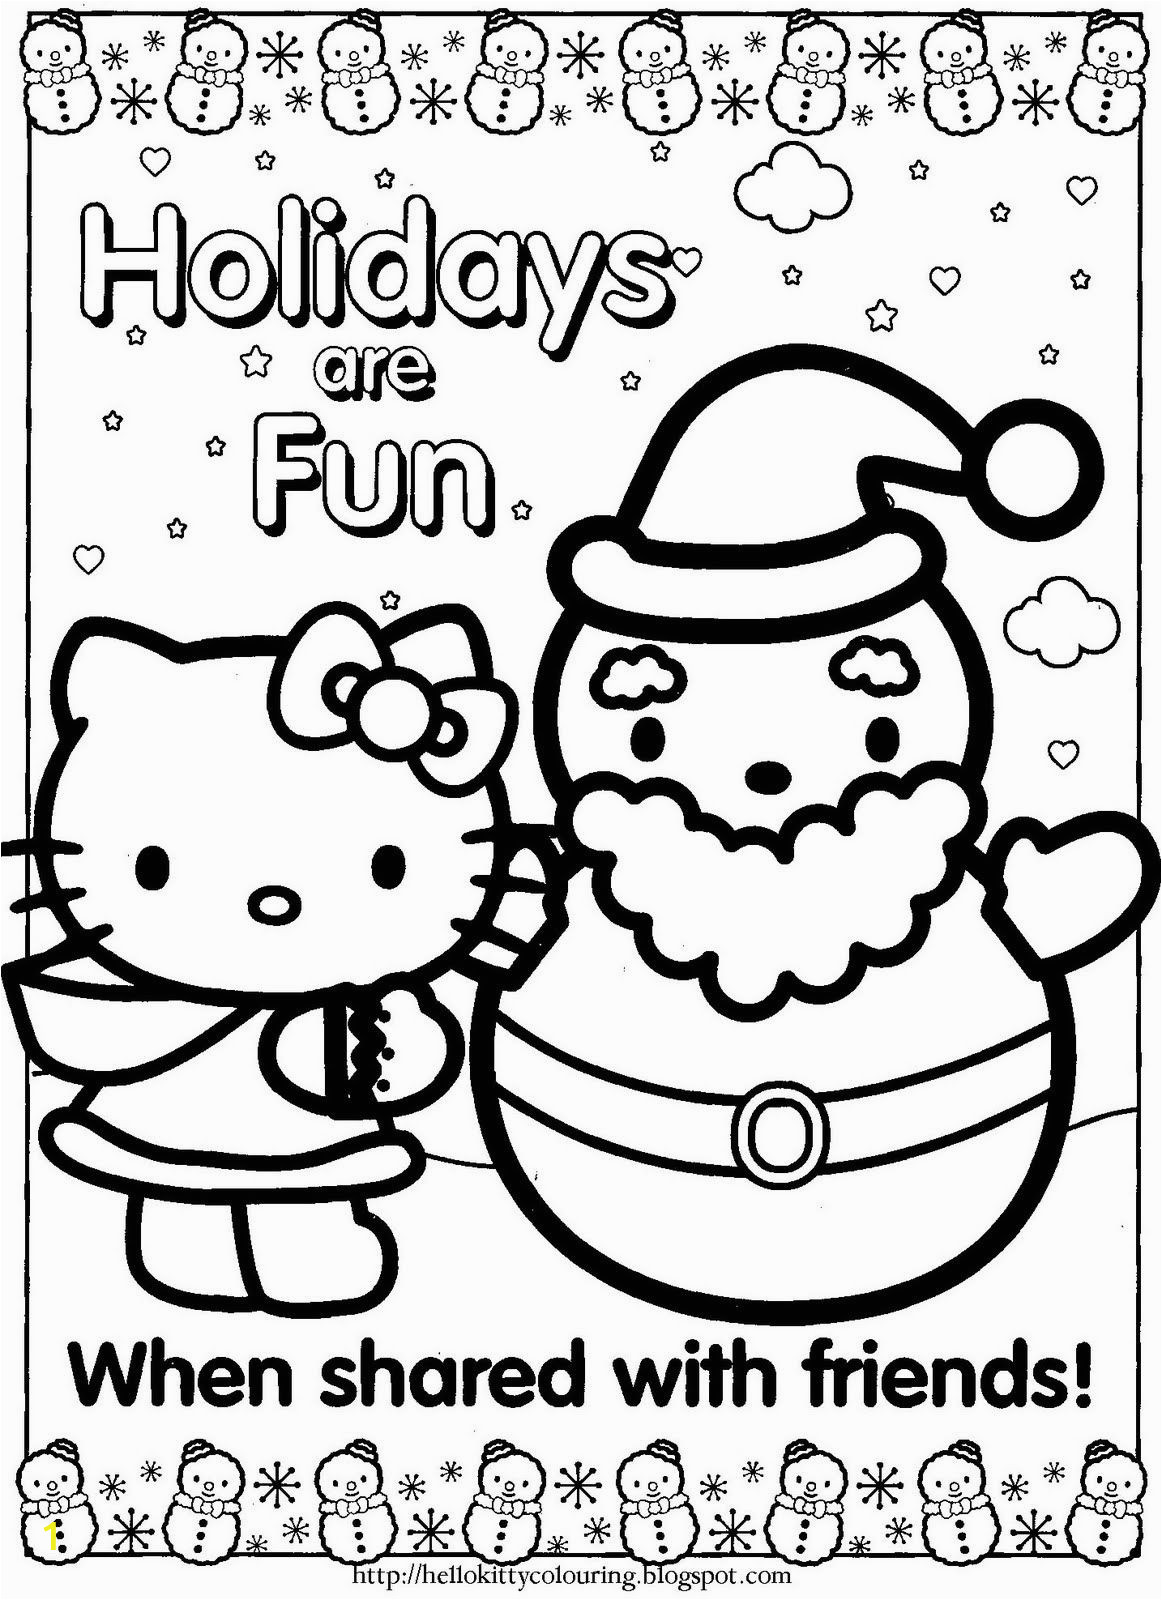 Hello Kitty Coloring Pages and Activities Happy Holidays Hello Kitty Coloring Page